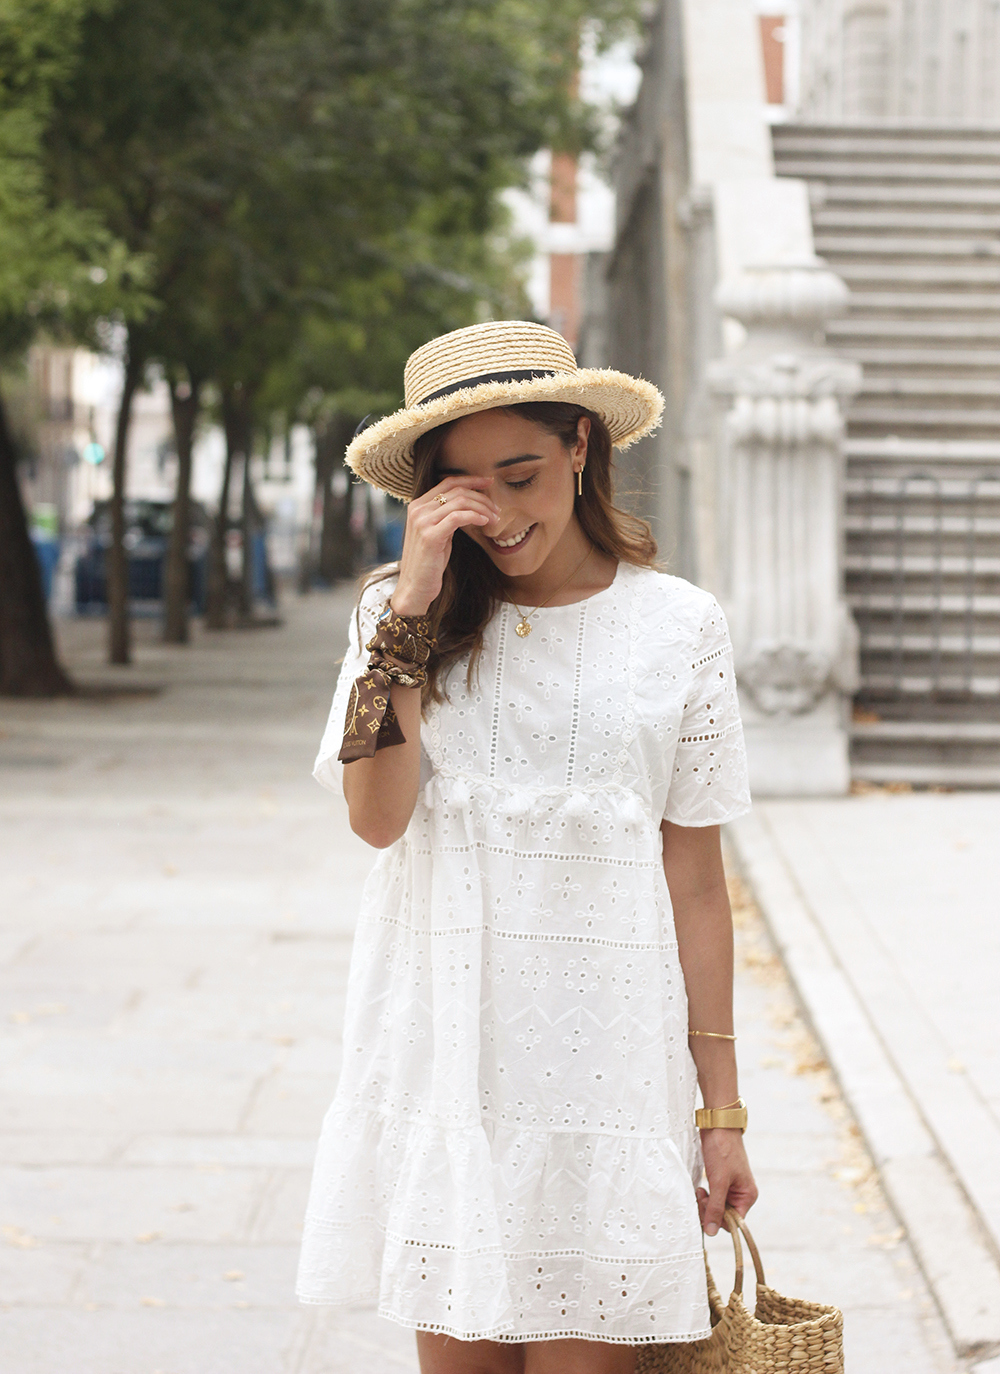 White summer dress canotier street style outfit 201913